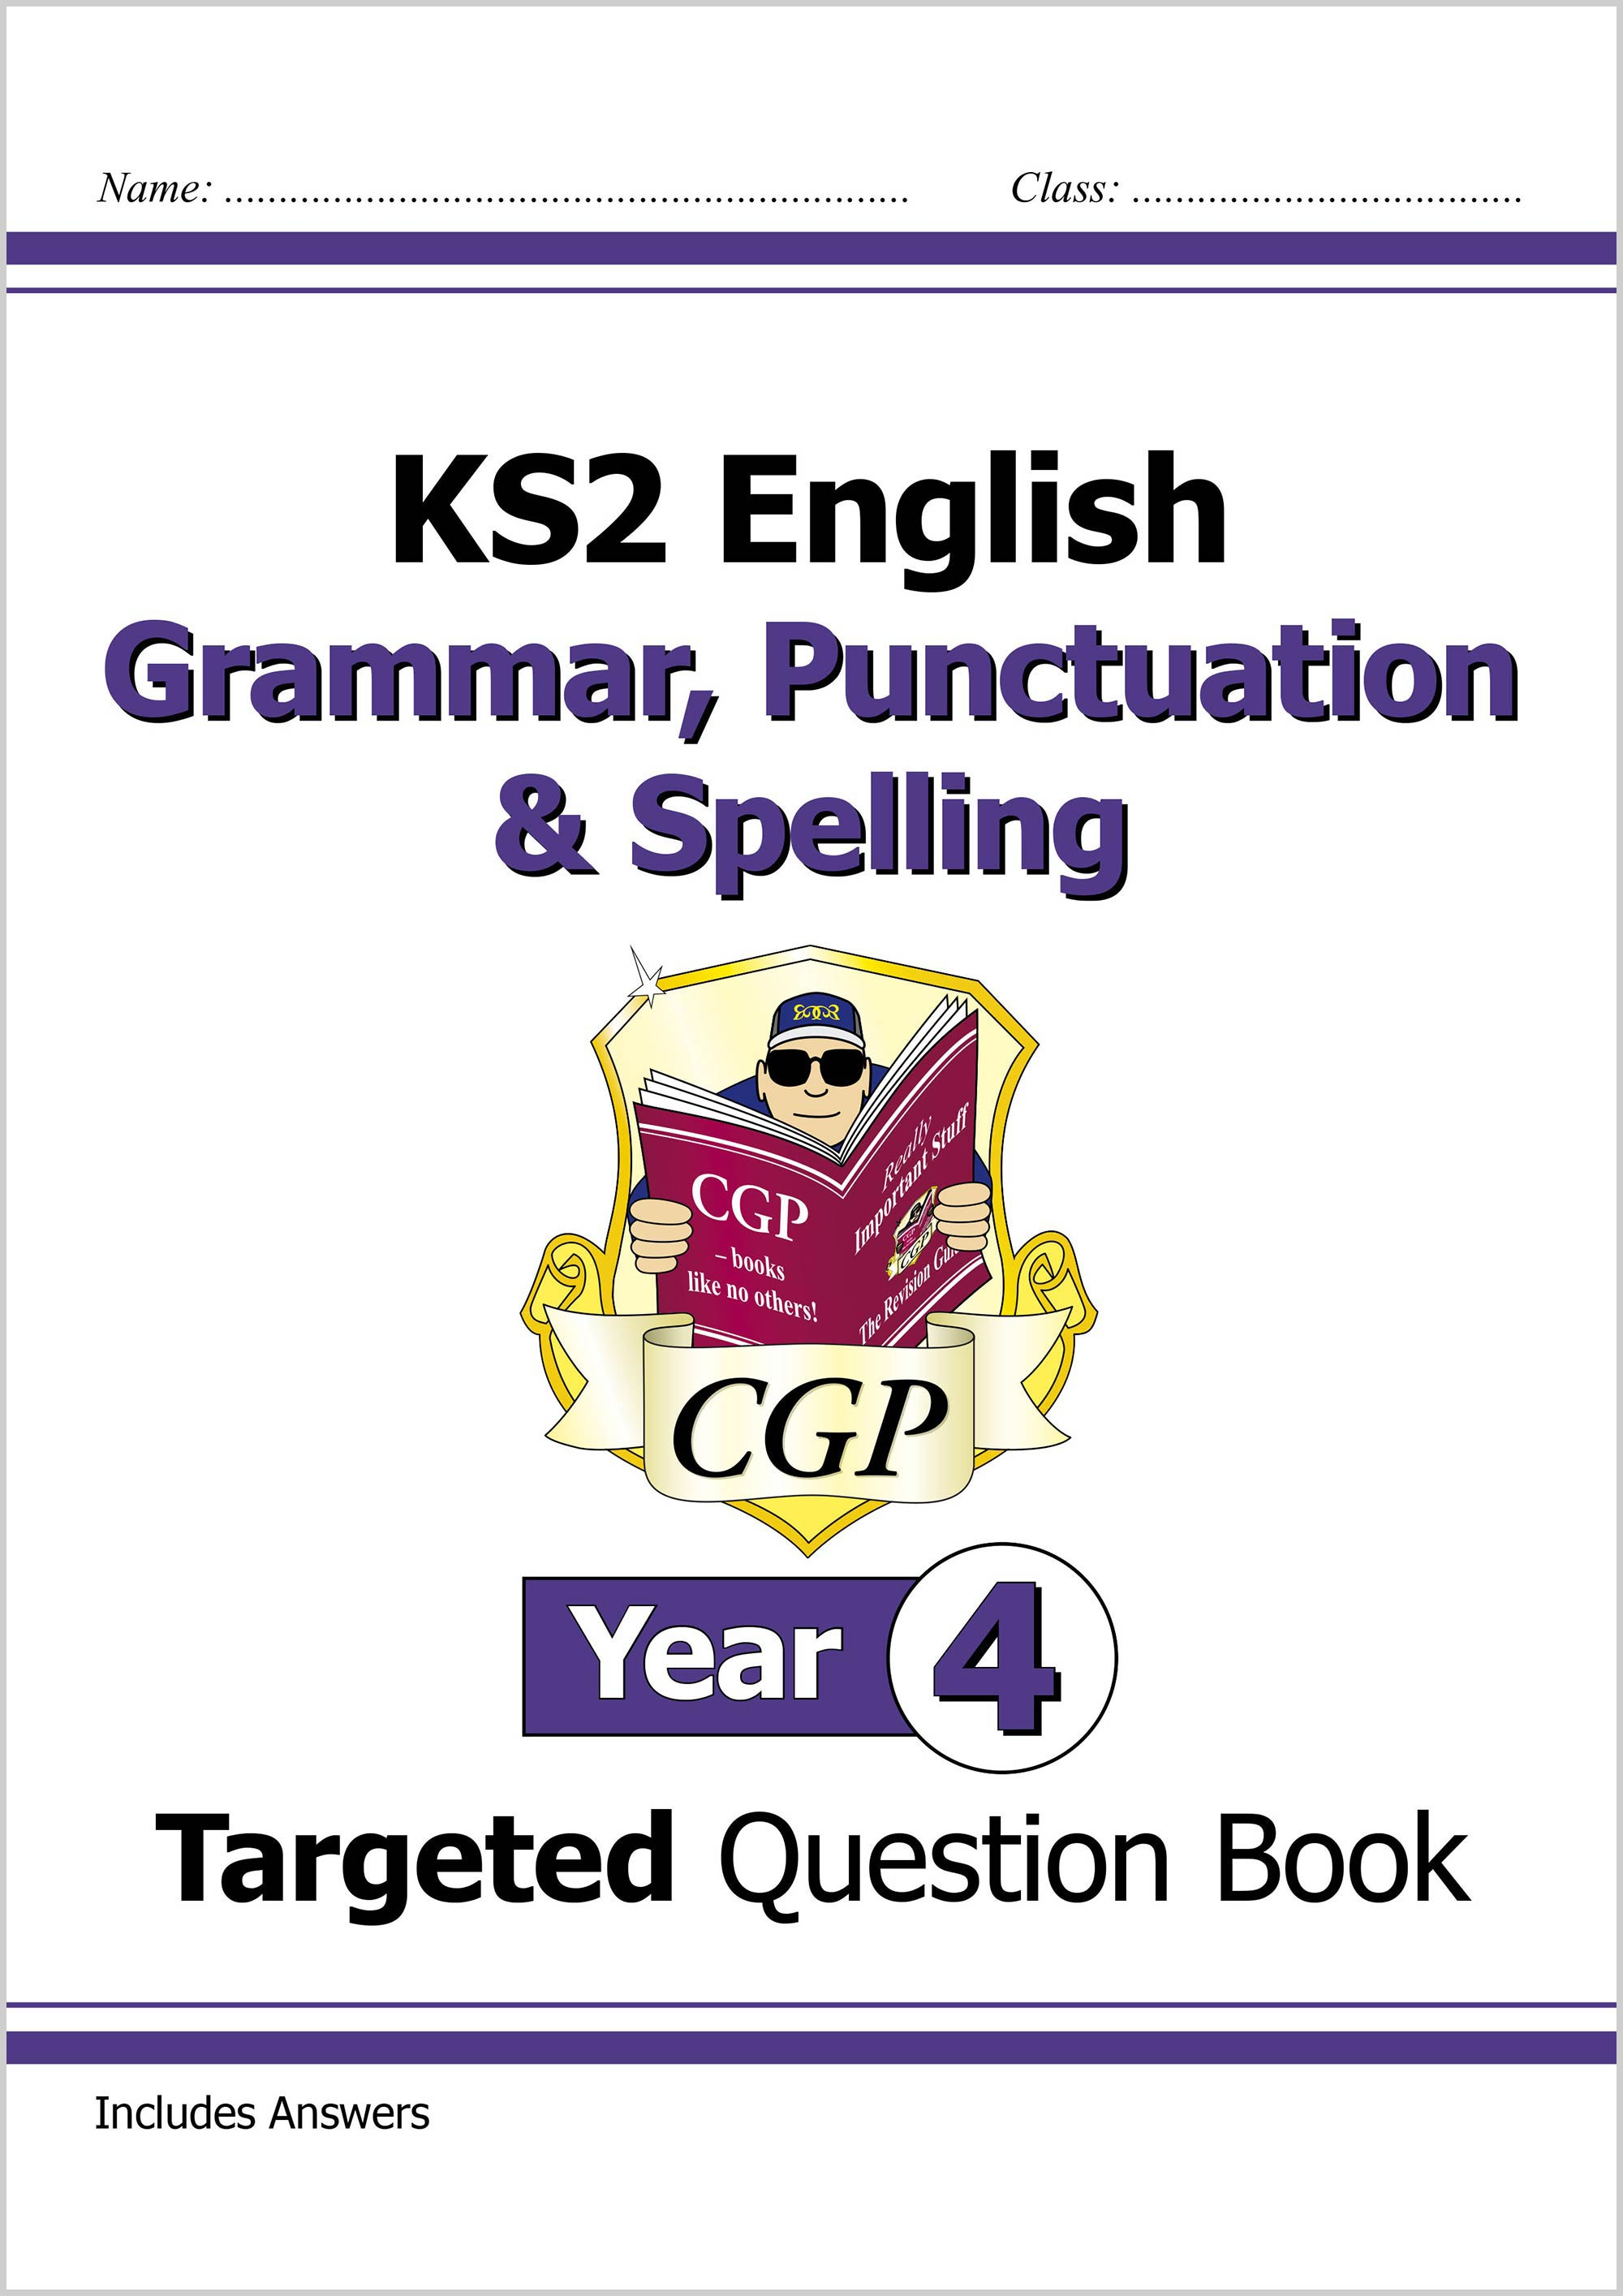 E4W22D - KS2 English Targeted Question Book: Grammar, Punctuation & Spelling - Year 4 Onlin Edition